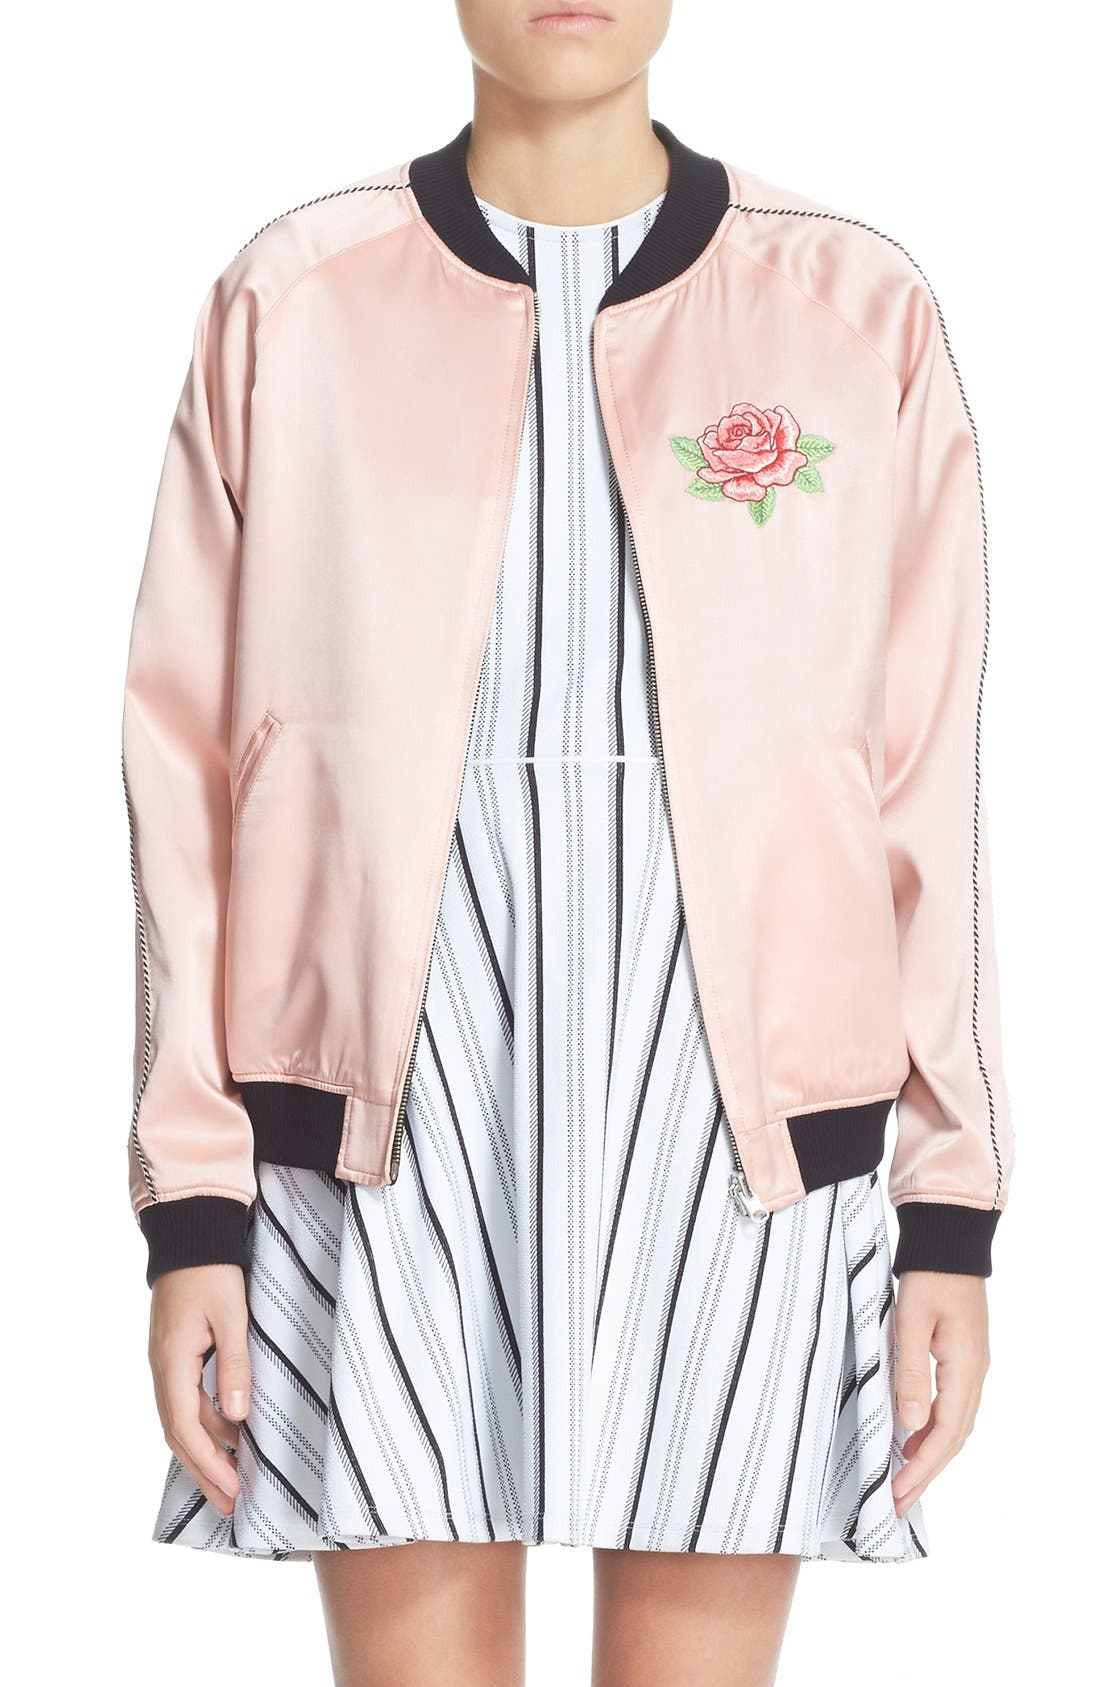 Main Image - Opening Ceremony Reversible Embroidered Silk Bomber Jacket